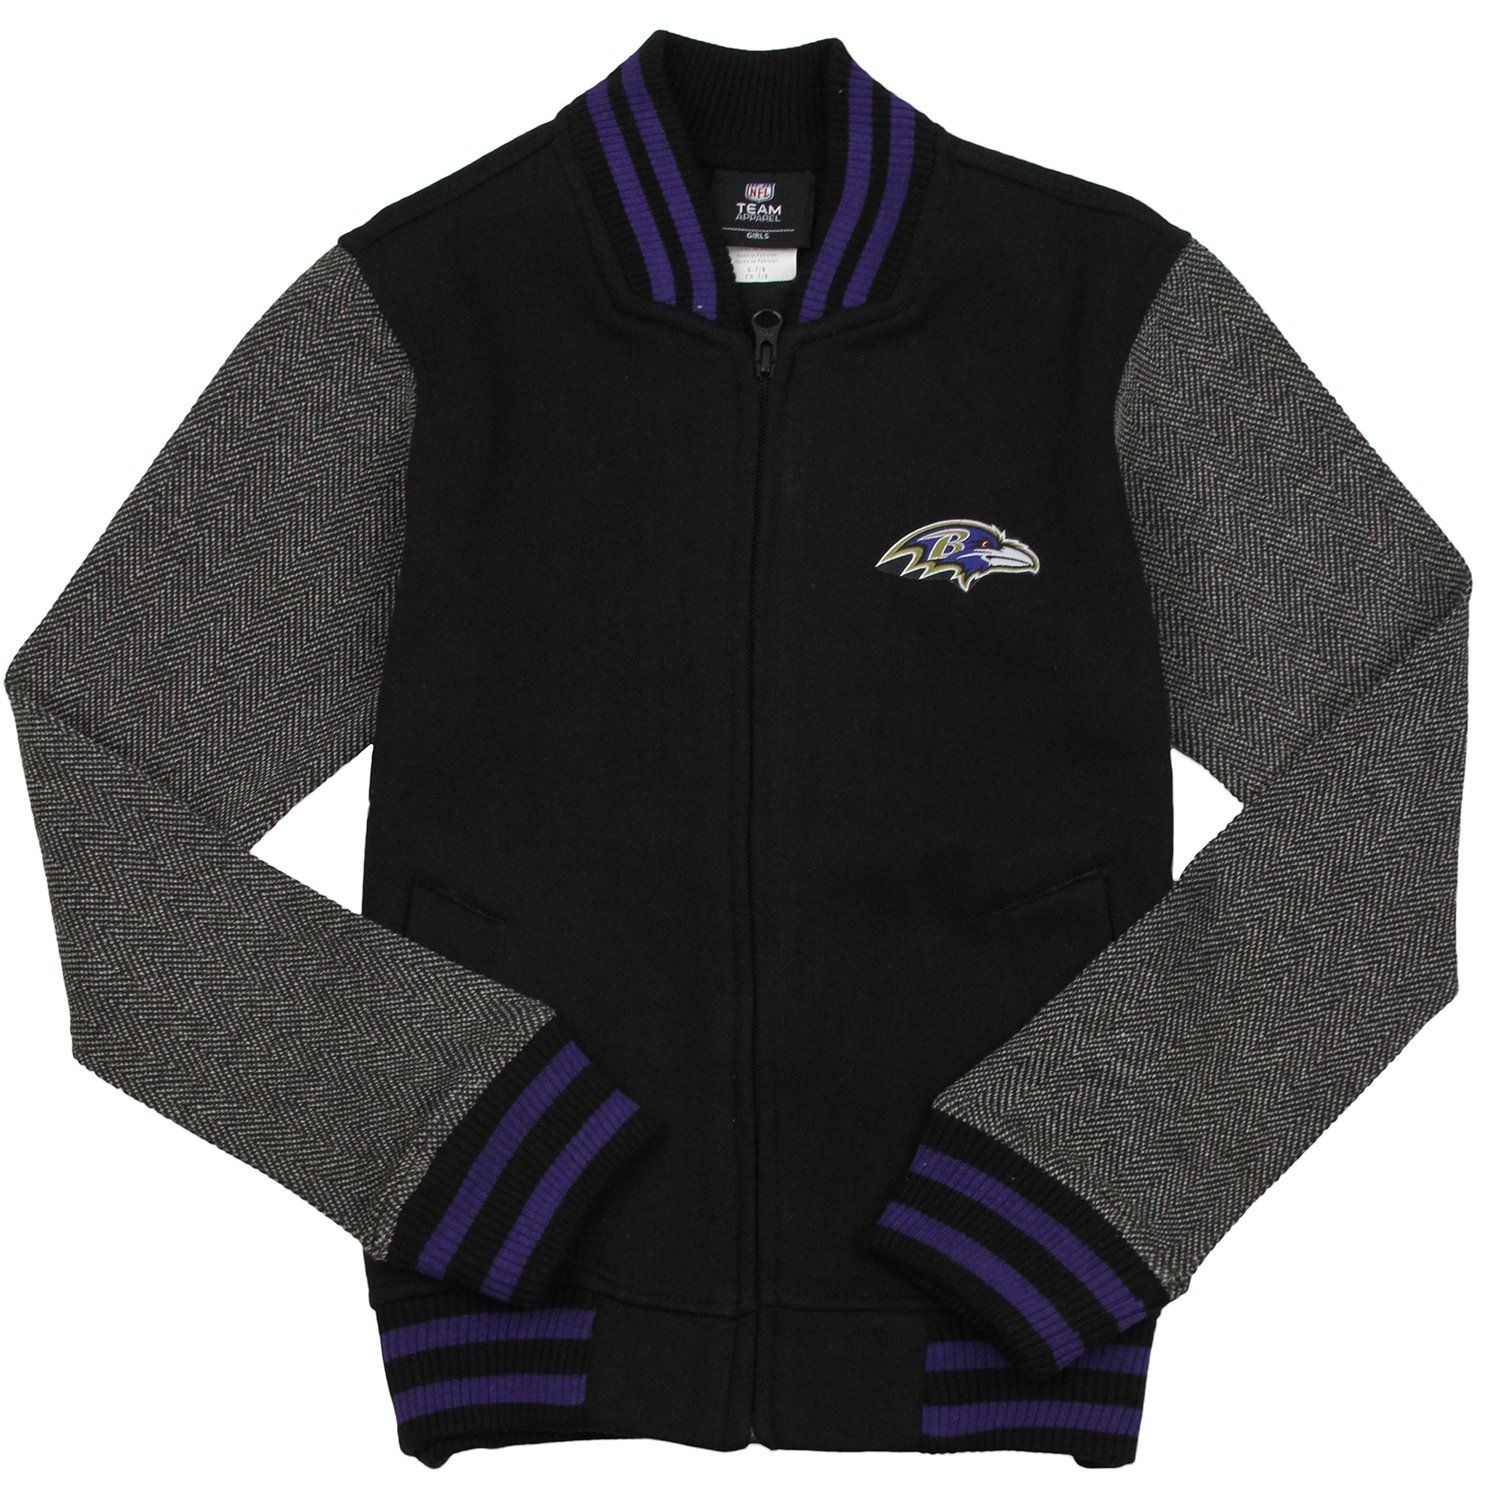 new style 313f1 7e59d Amazon.com : Outerstuff NFL Baltimore Ravens Big Girls Youth ...